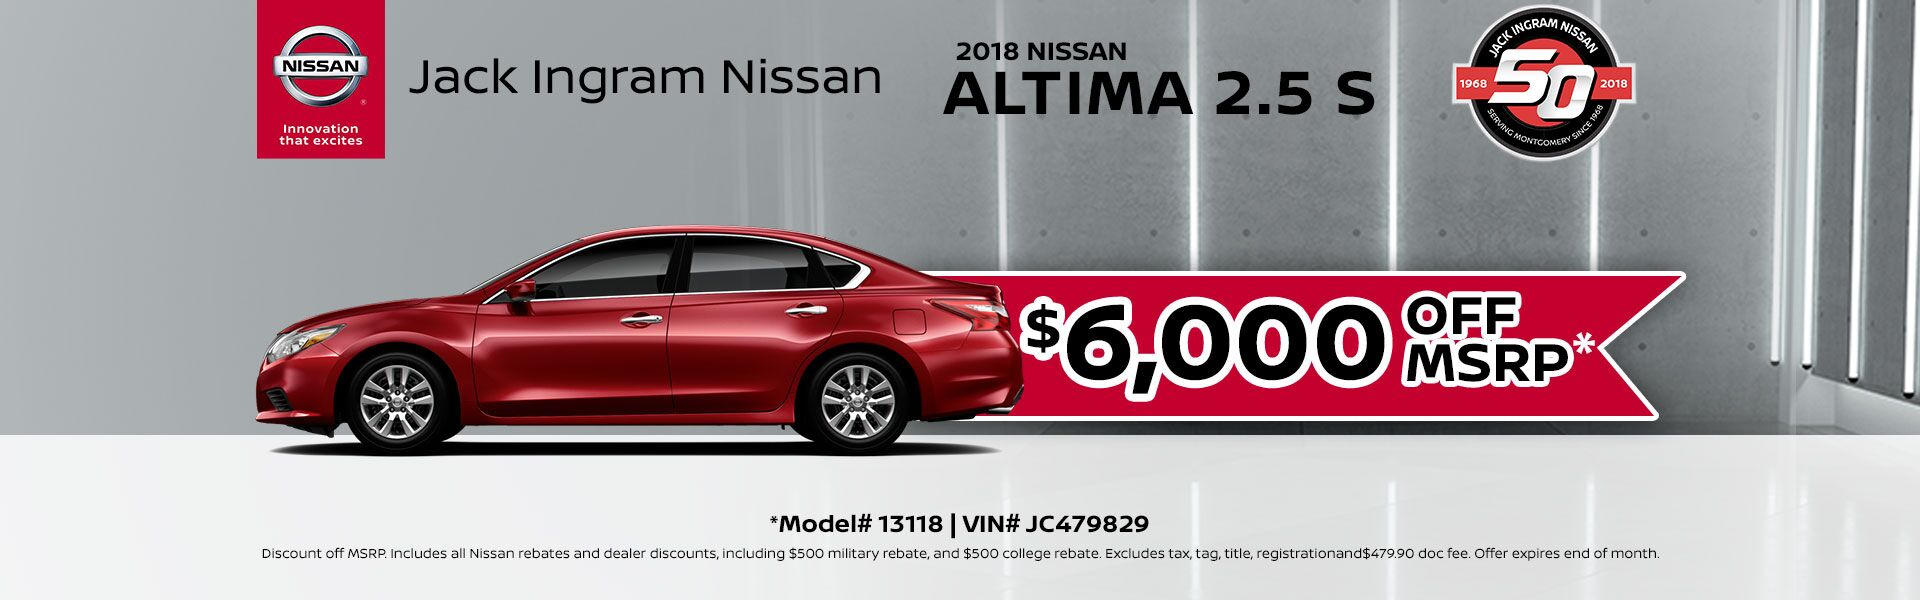 Nissan Altima MSRP Sept